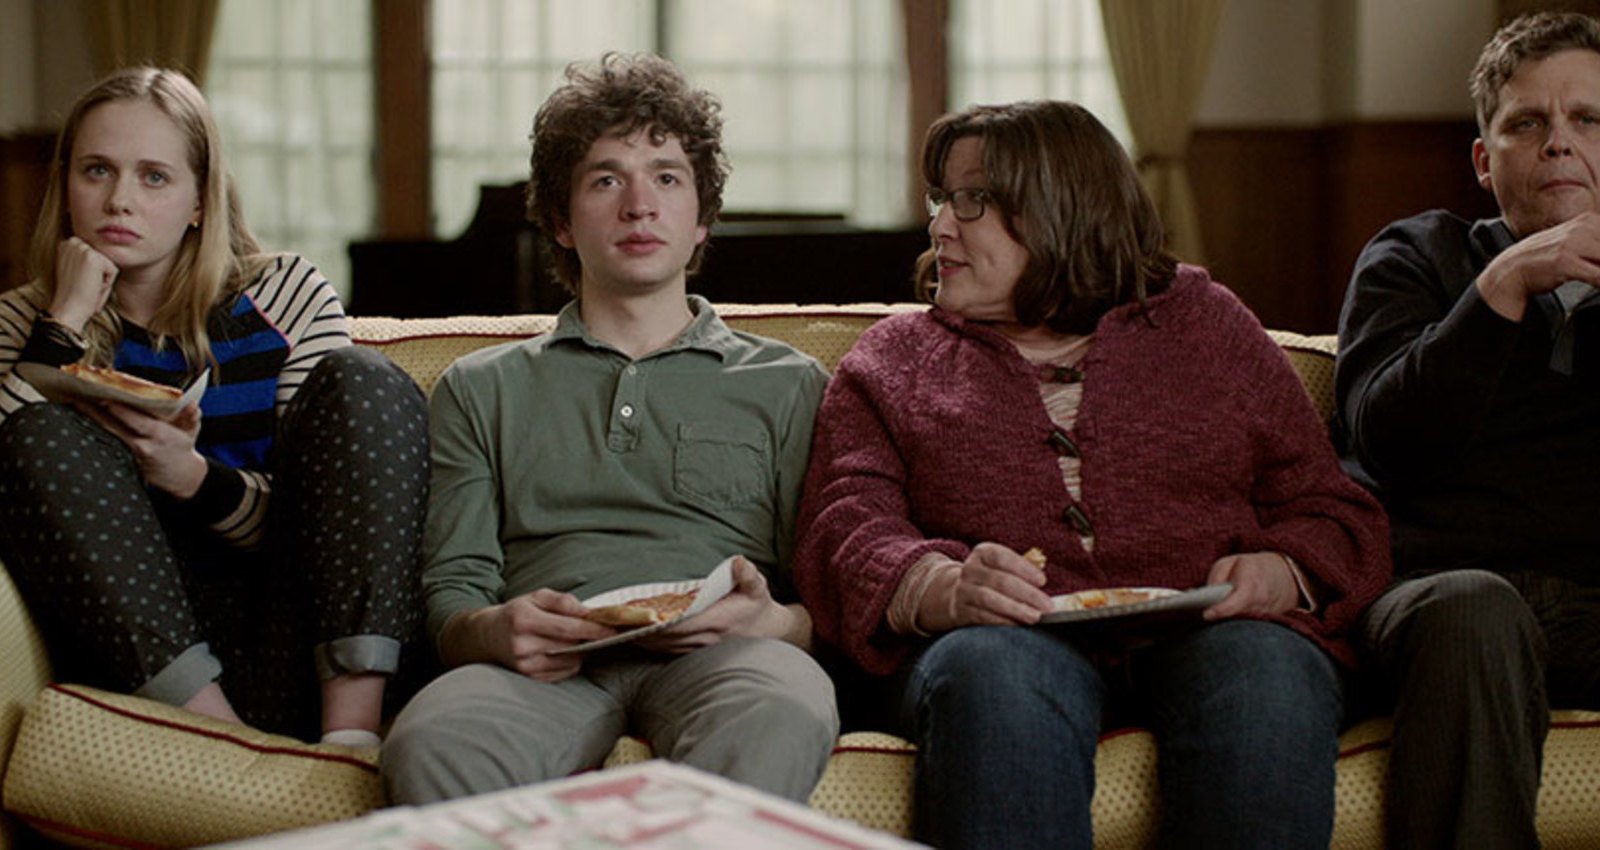 Awkward Family Viewing - Whats He In